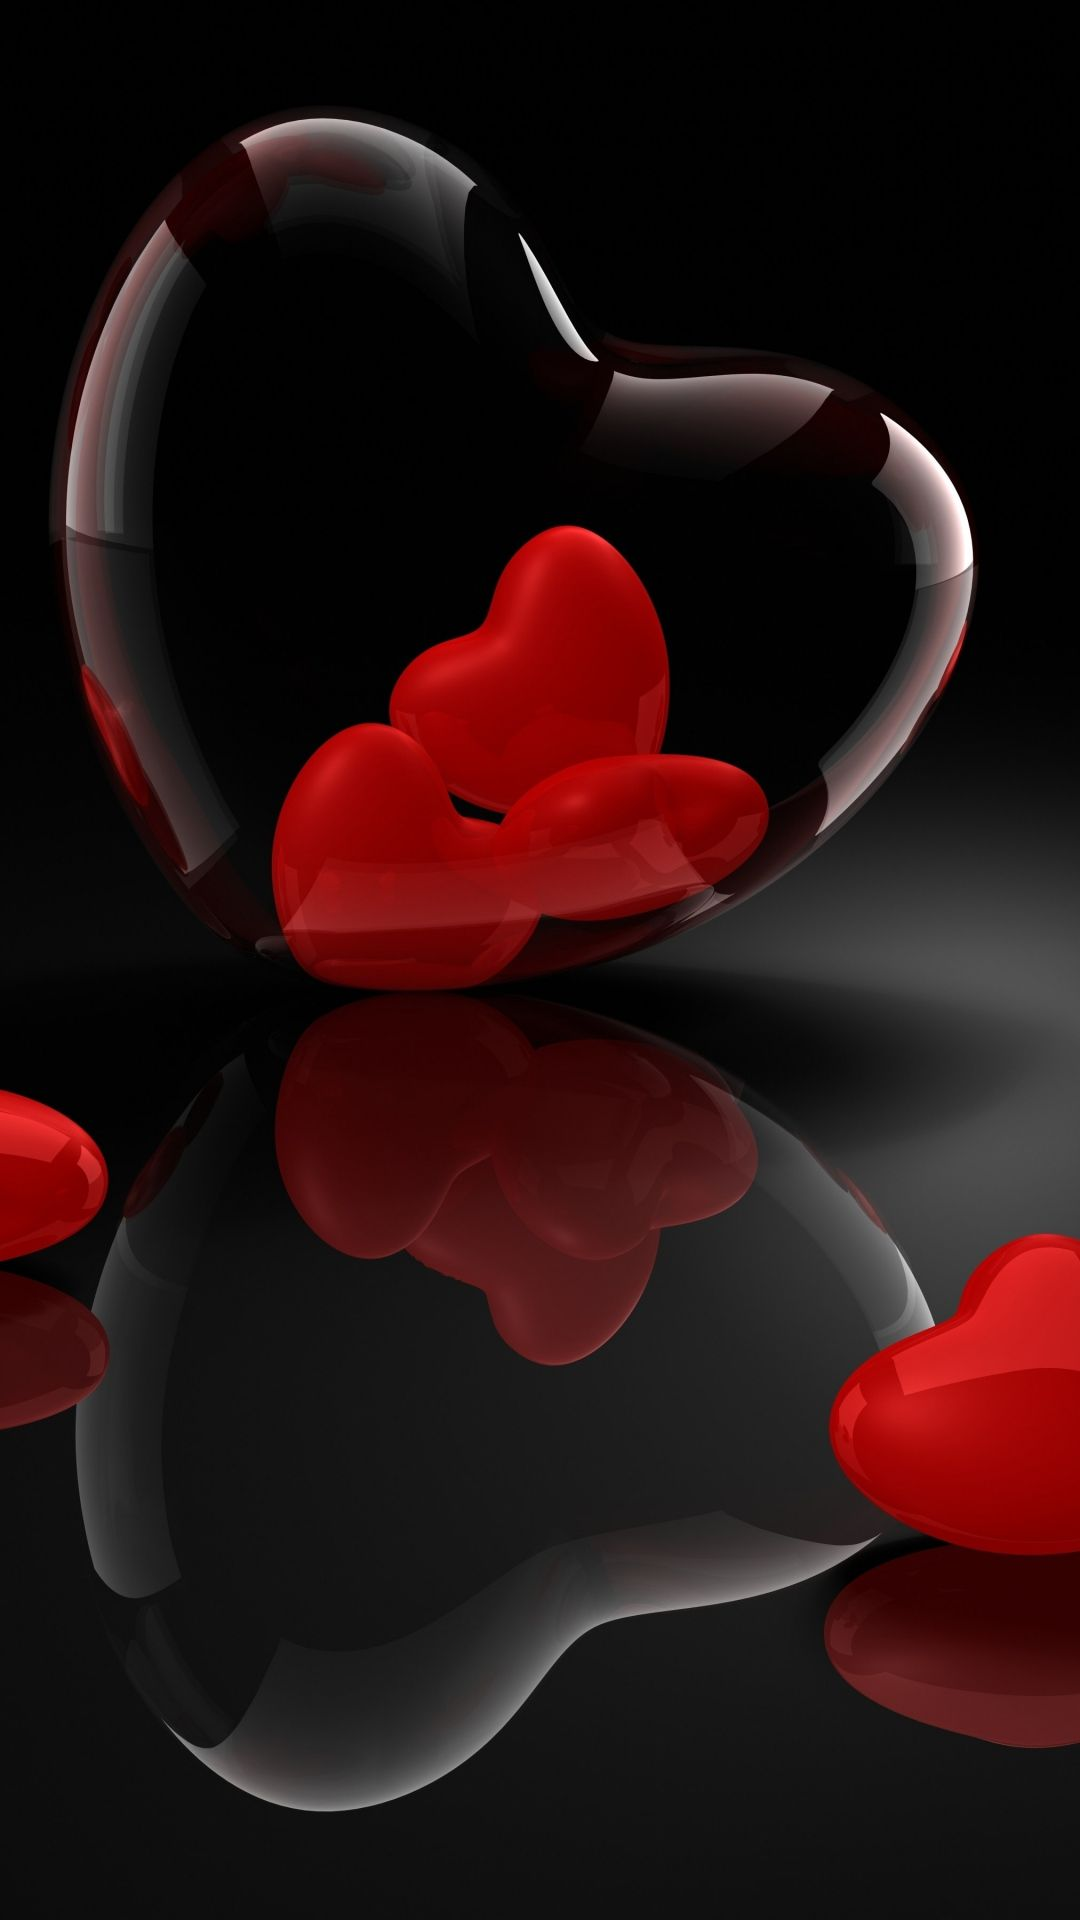 Heart Glass 3d Reflection Iphone 8 Wallpapers Heart Wallpaper